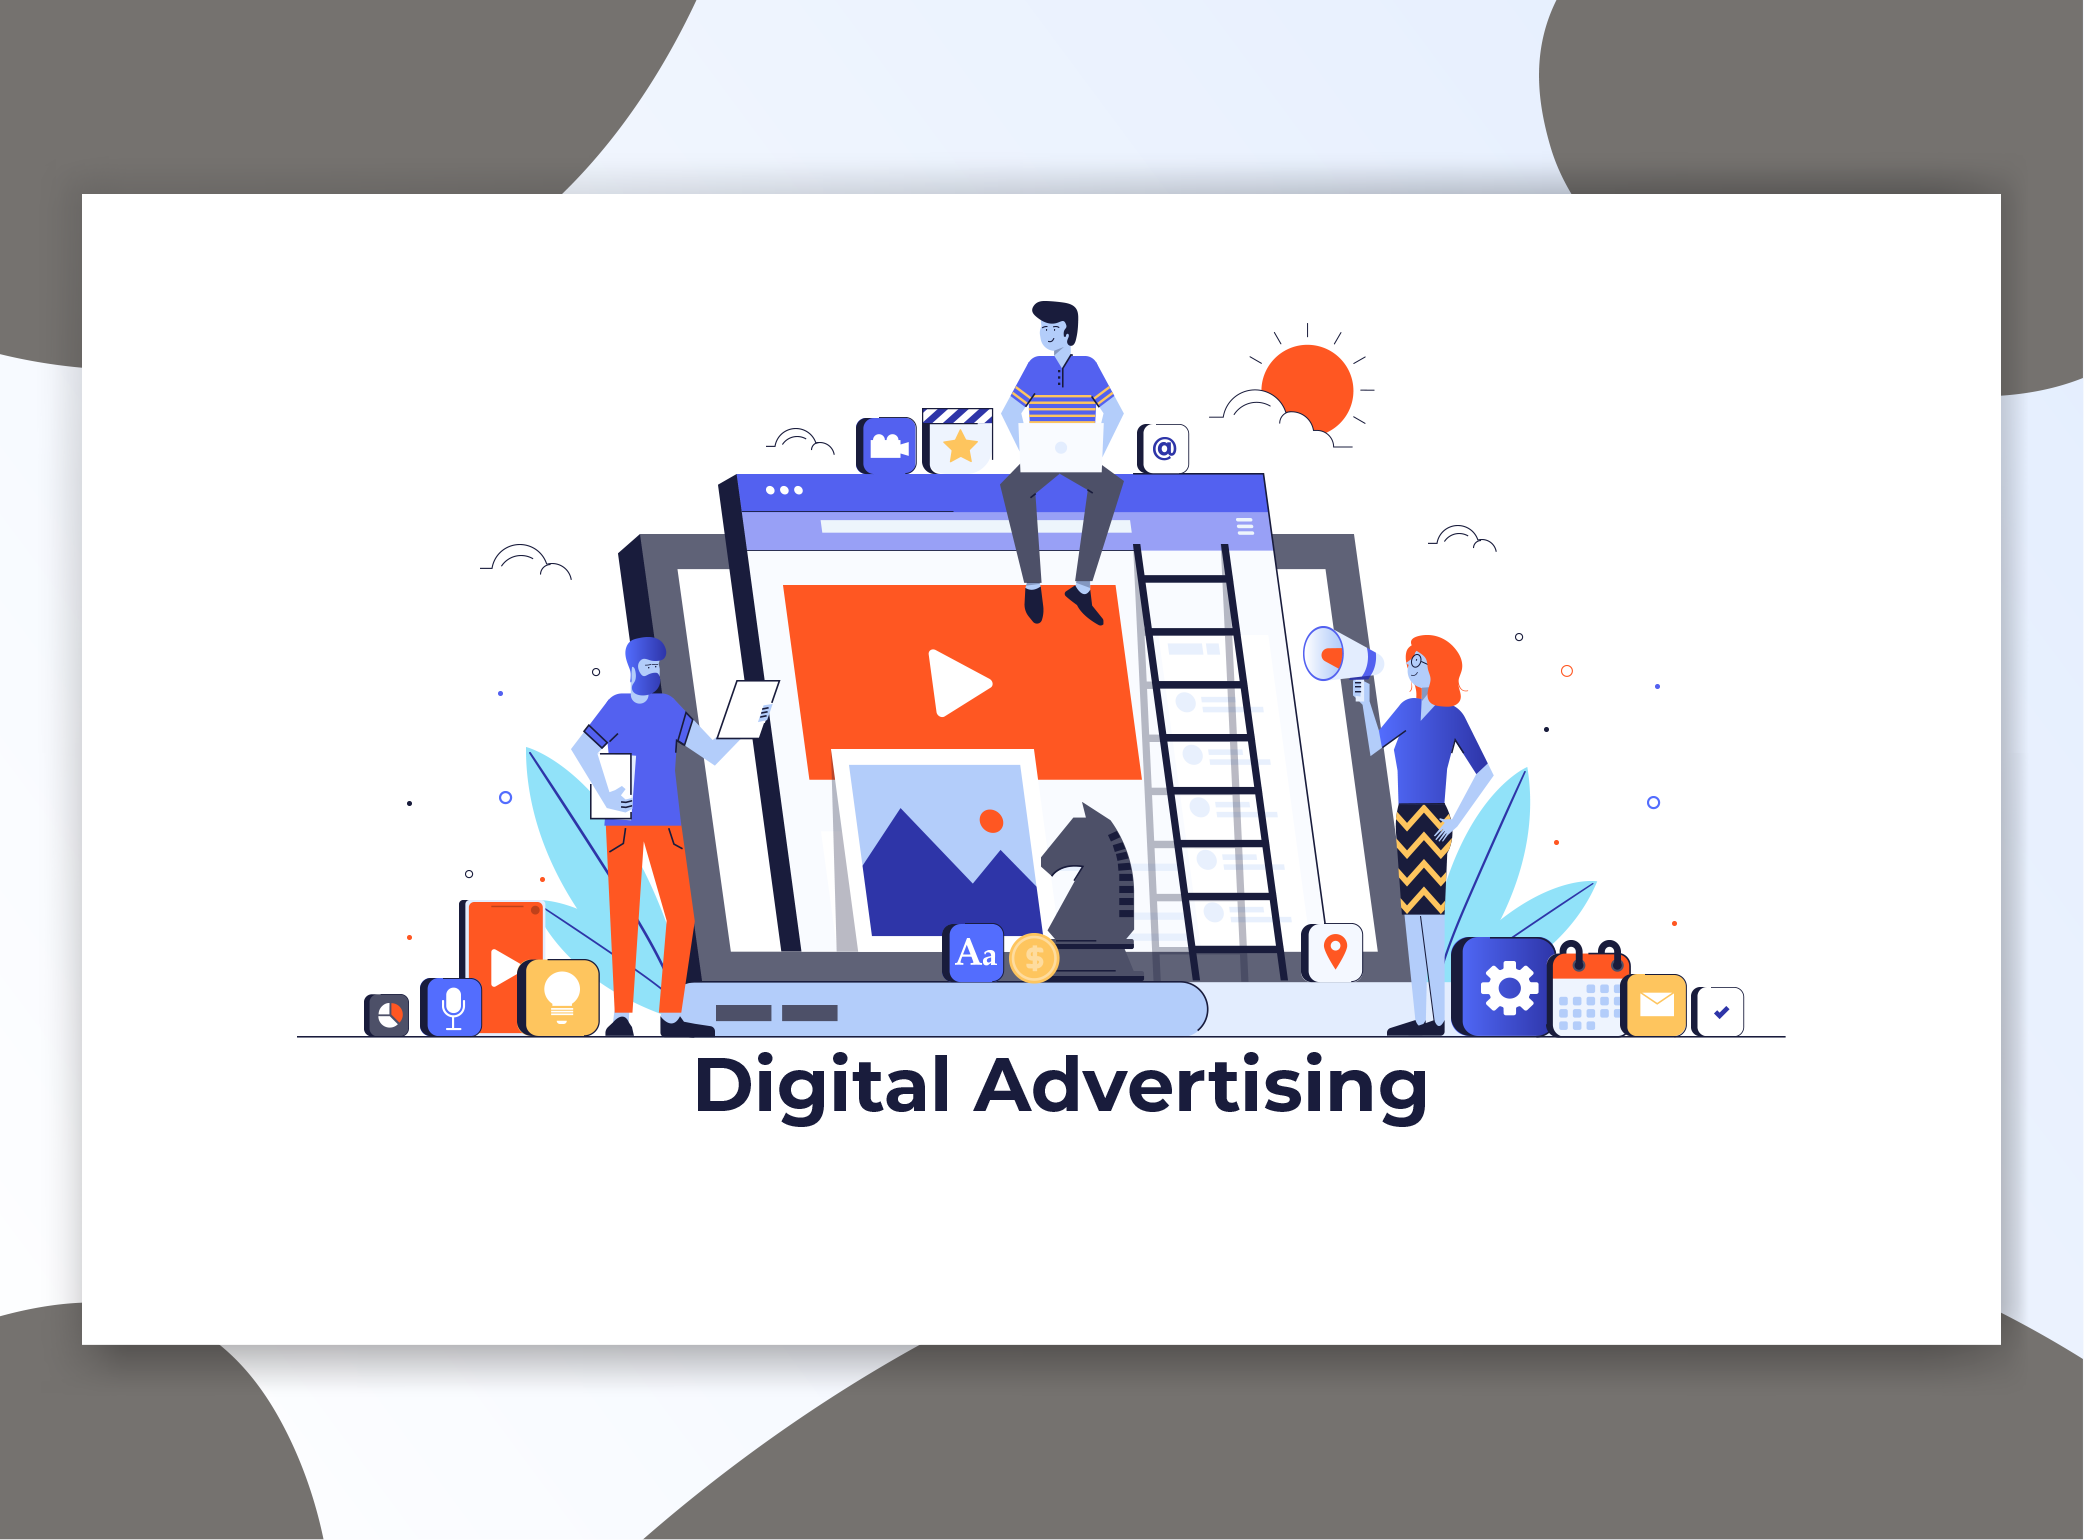 Search Engine Marketing, Online Advertising, Google Ads, Facebook Ads, Instagram Ads, Social Media Advertising for Healthcare Marketing, Physical Therapy Marketing, Educational Marketing, and Technology Marketing